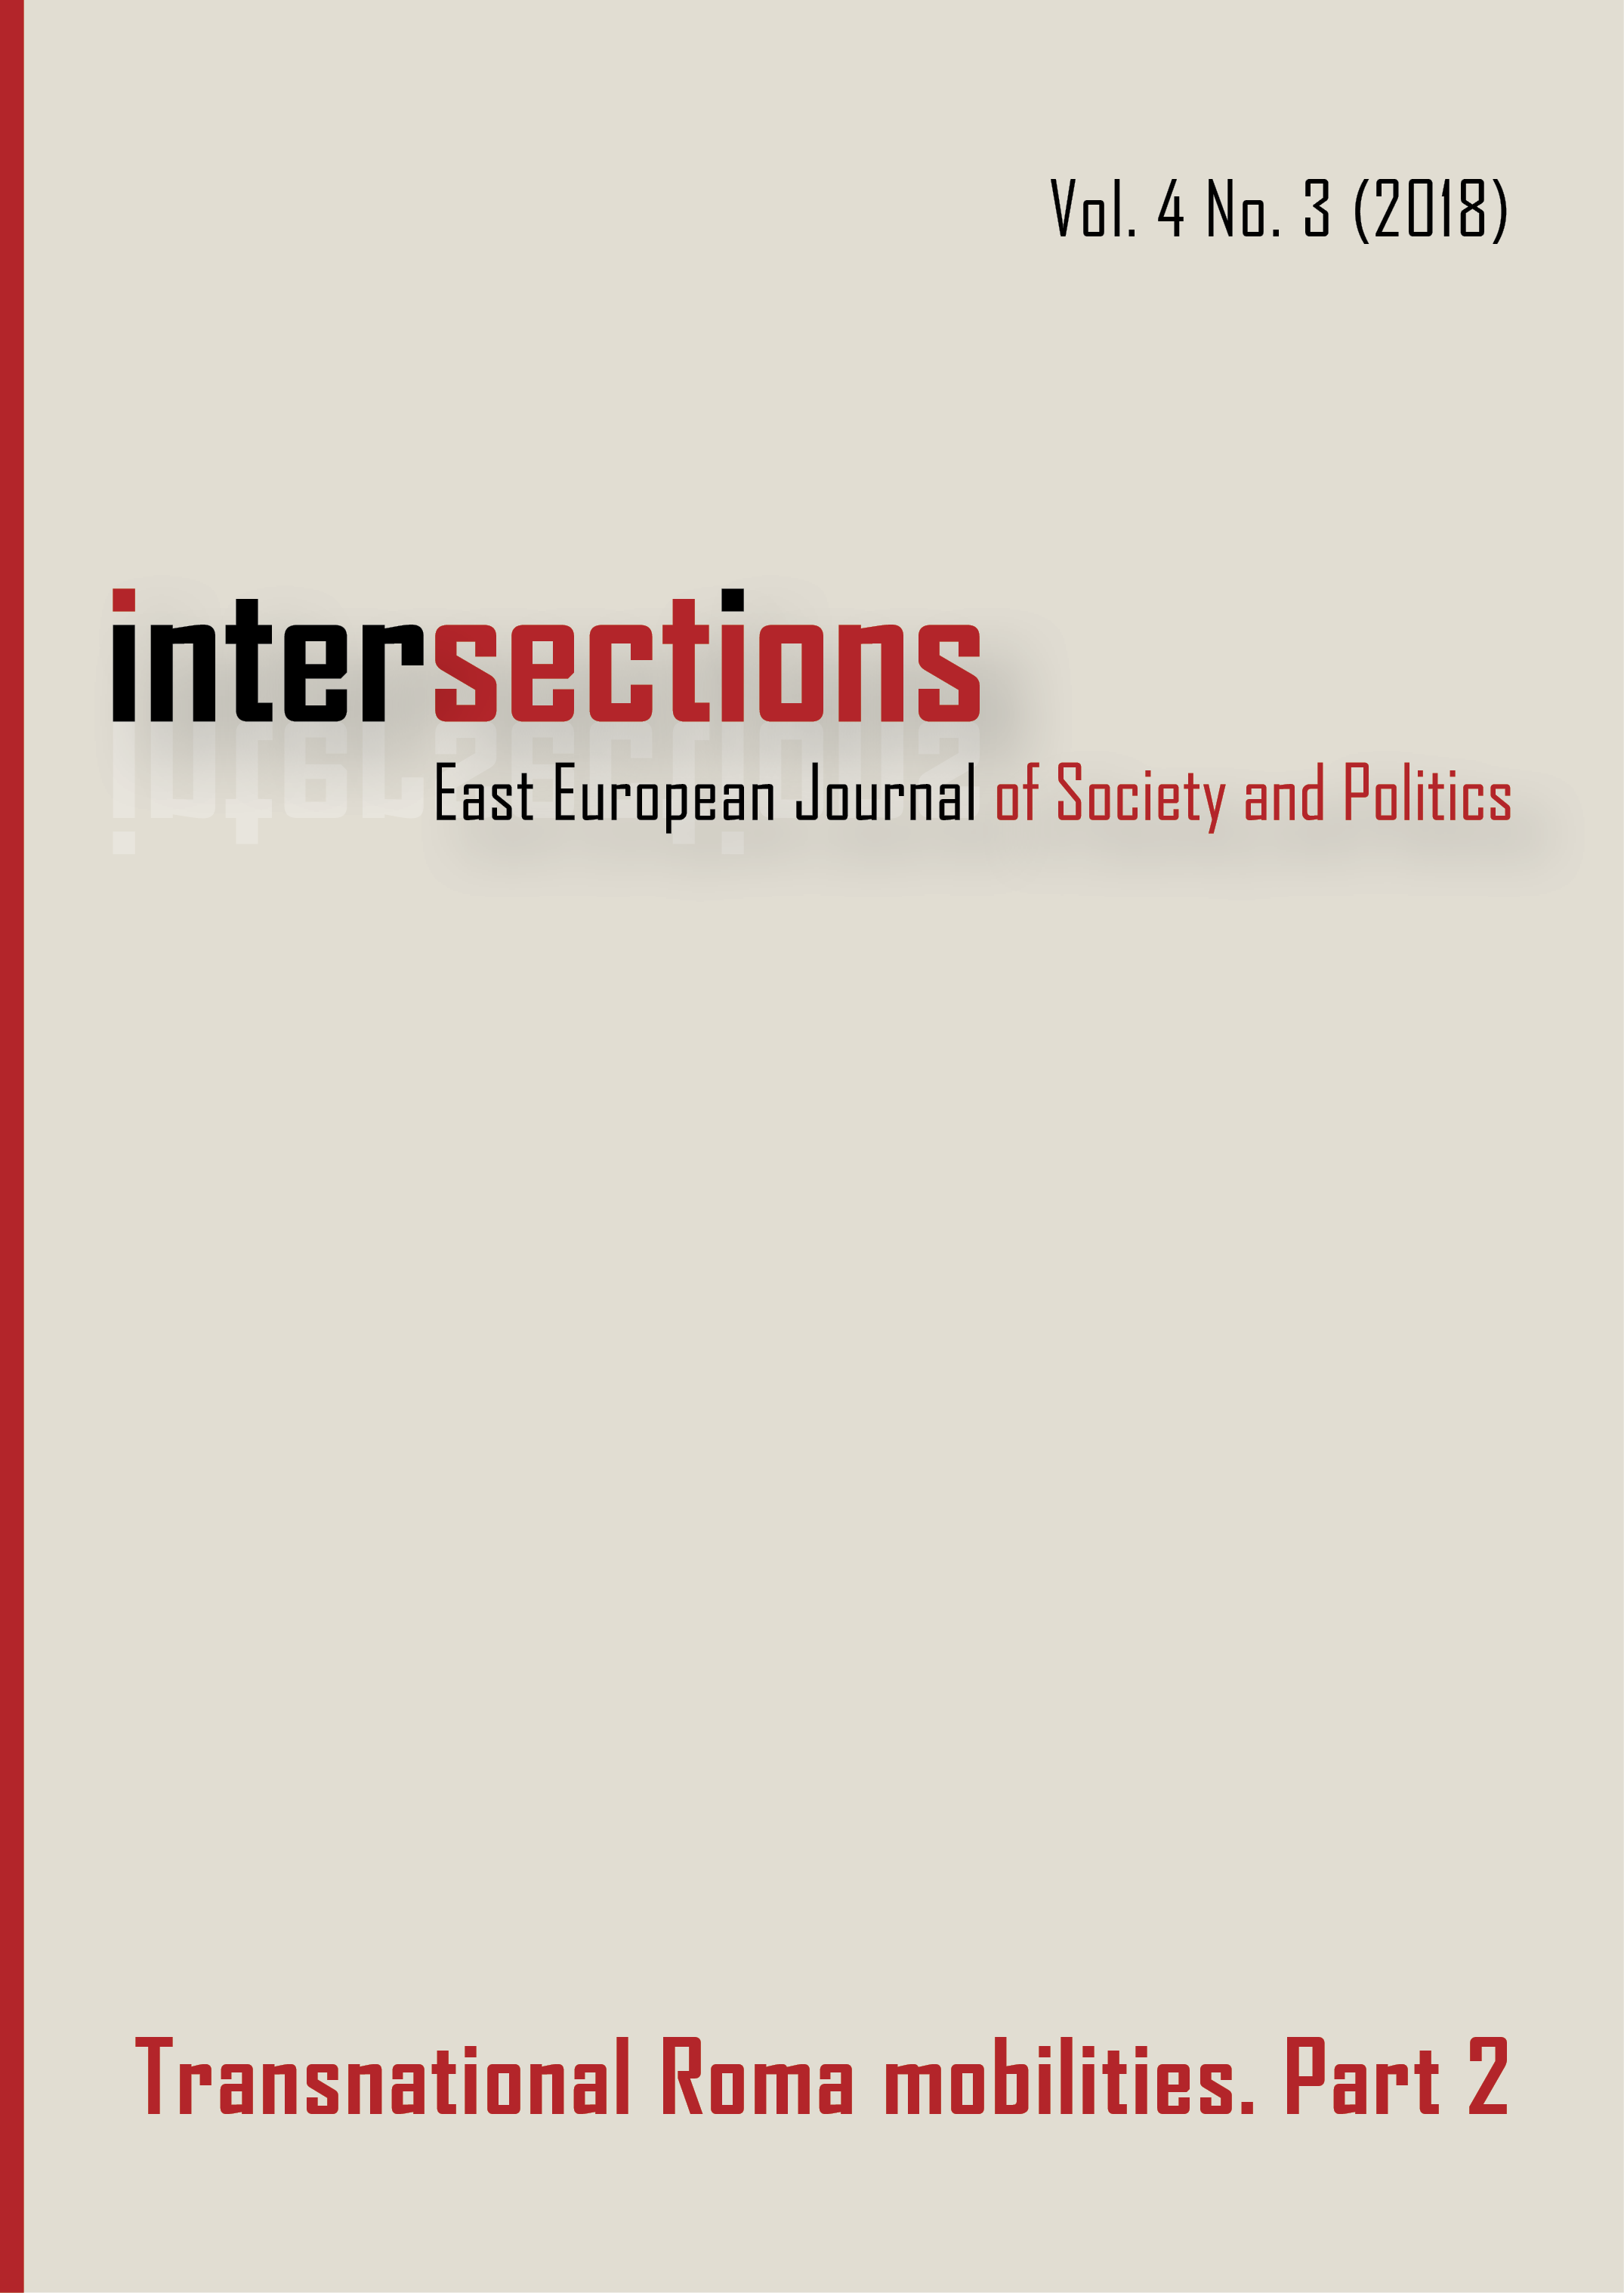 View Vol. 4 No. 3 (2018): Transnational Roma Mobilities. Part 2.